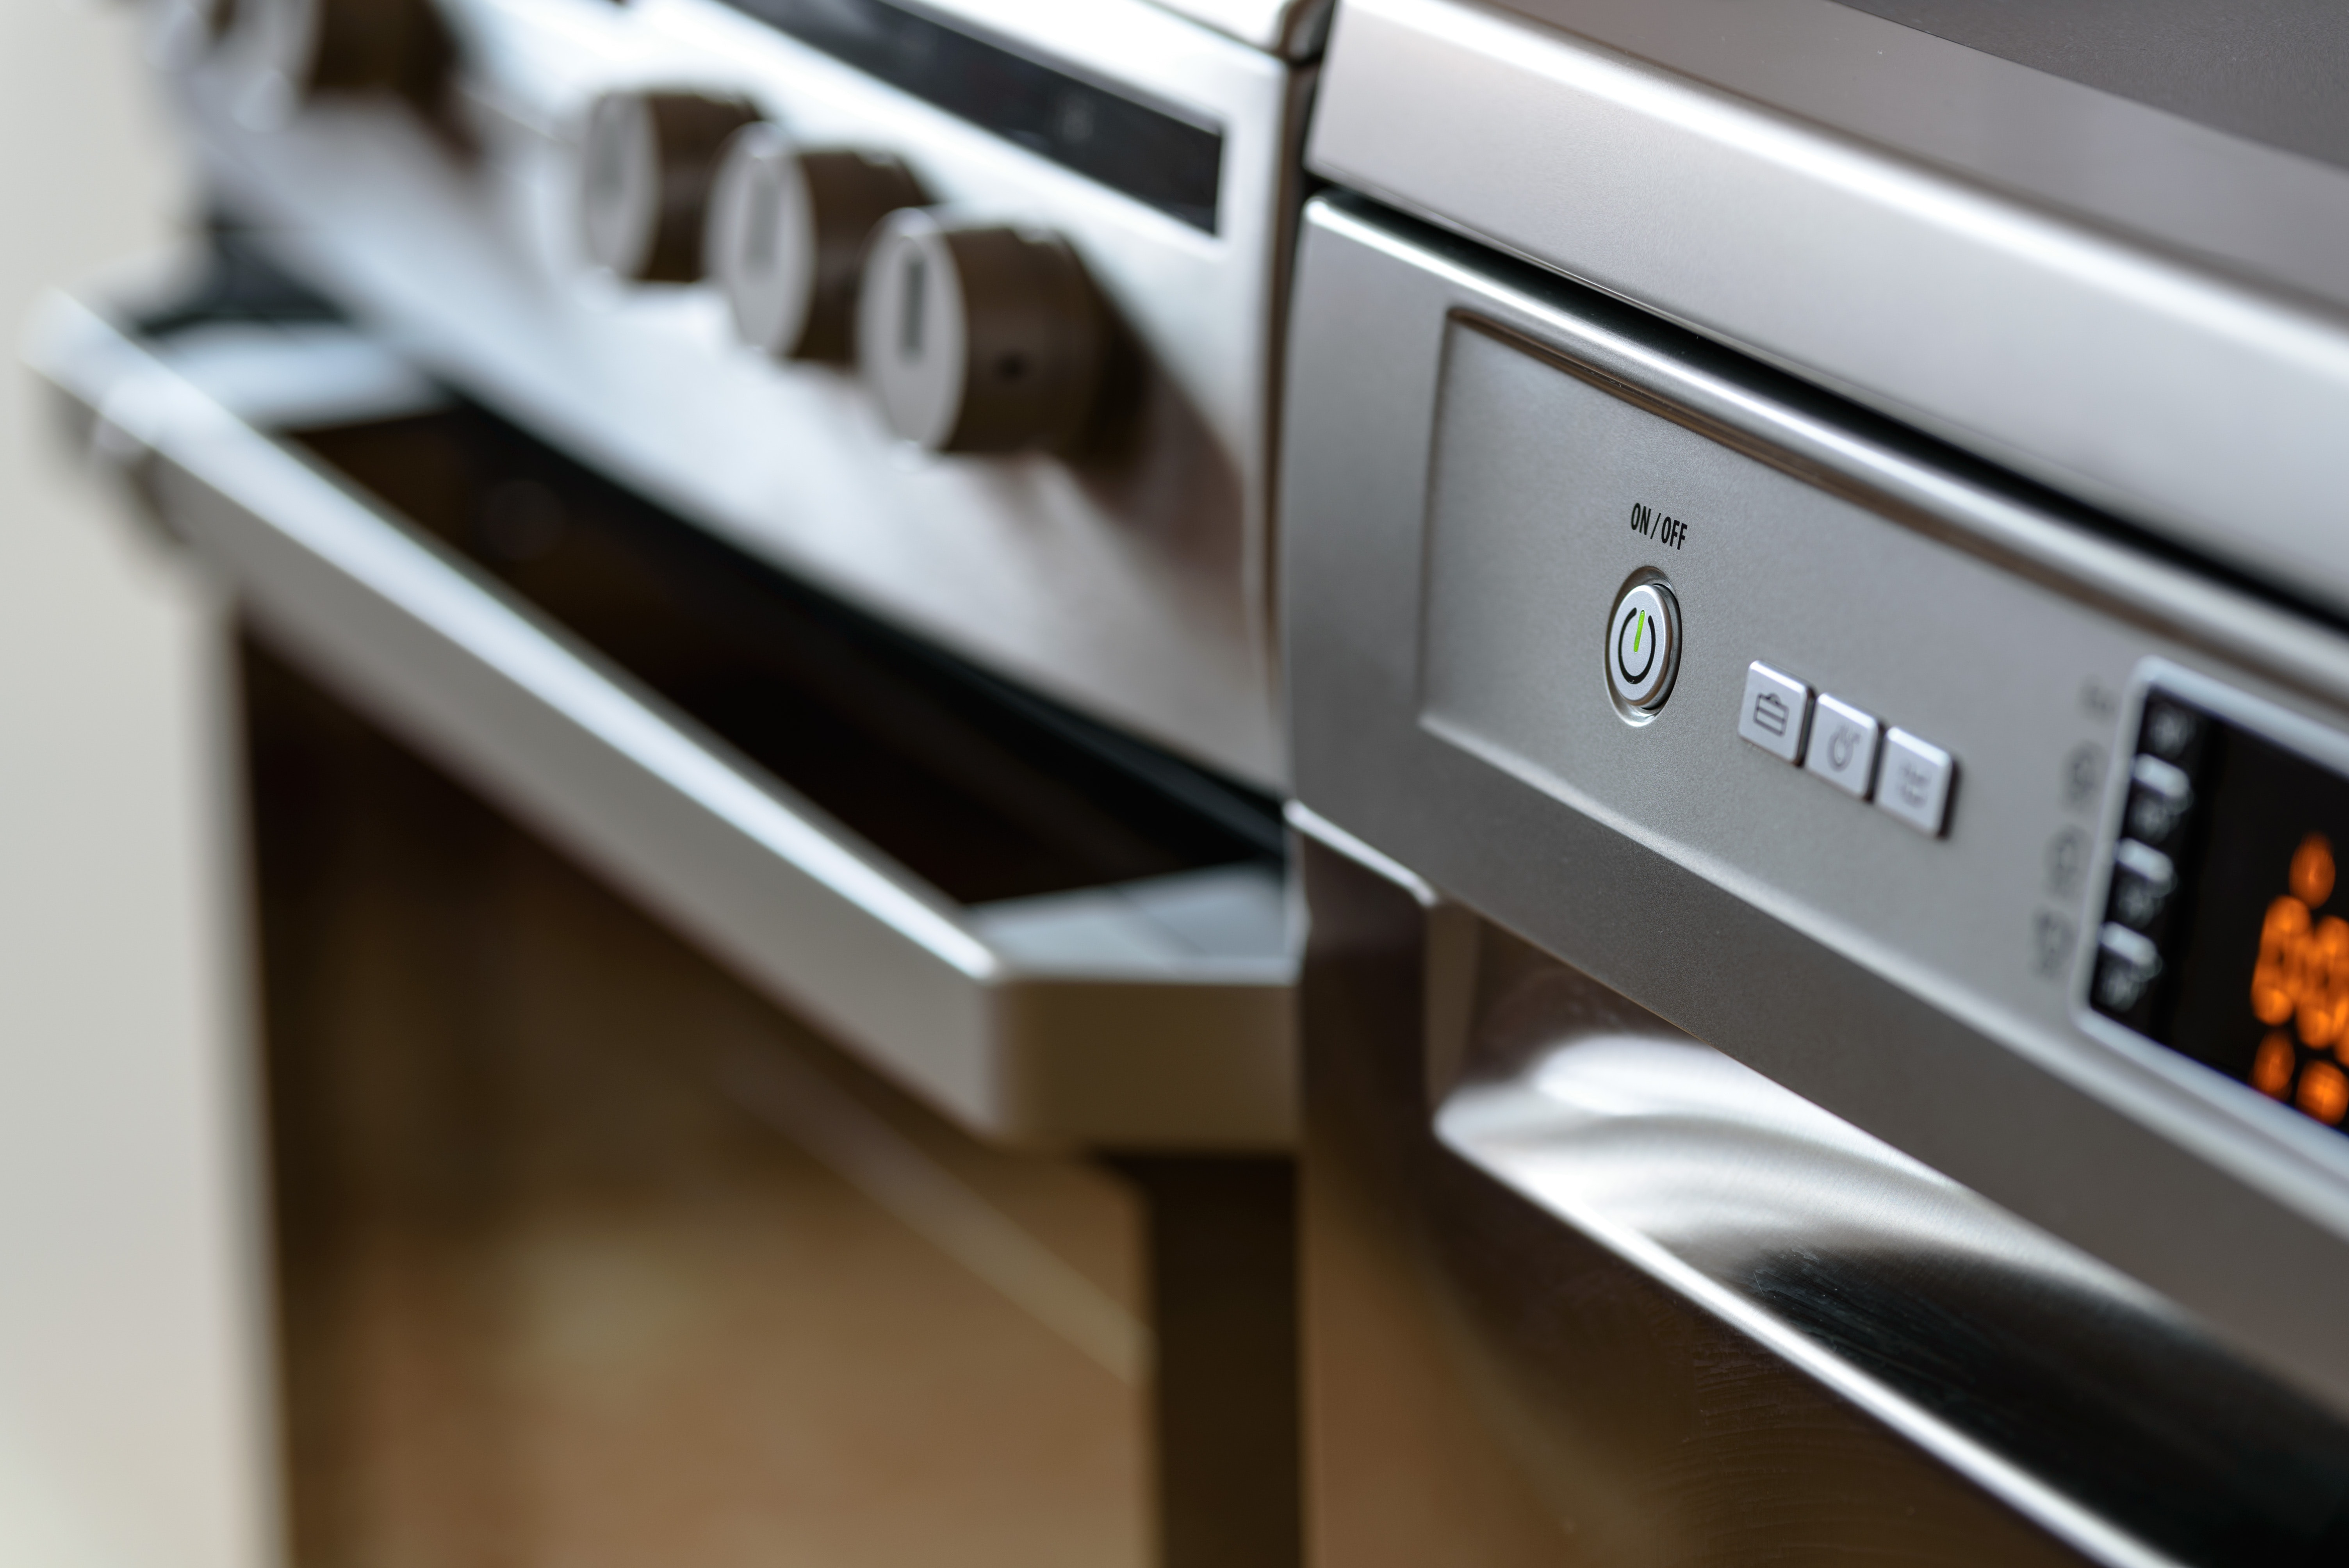 Sleek oven and stove with control knobs